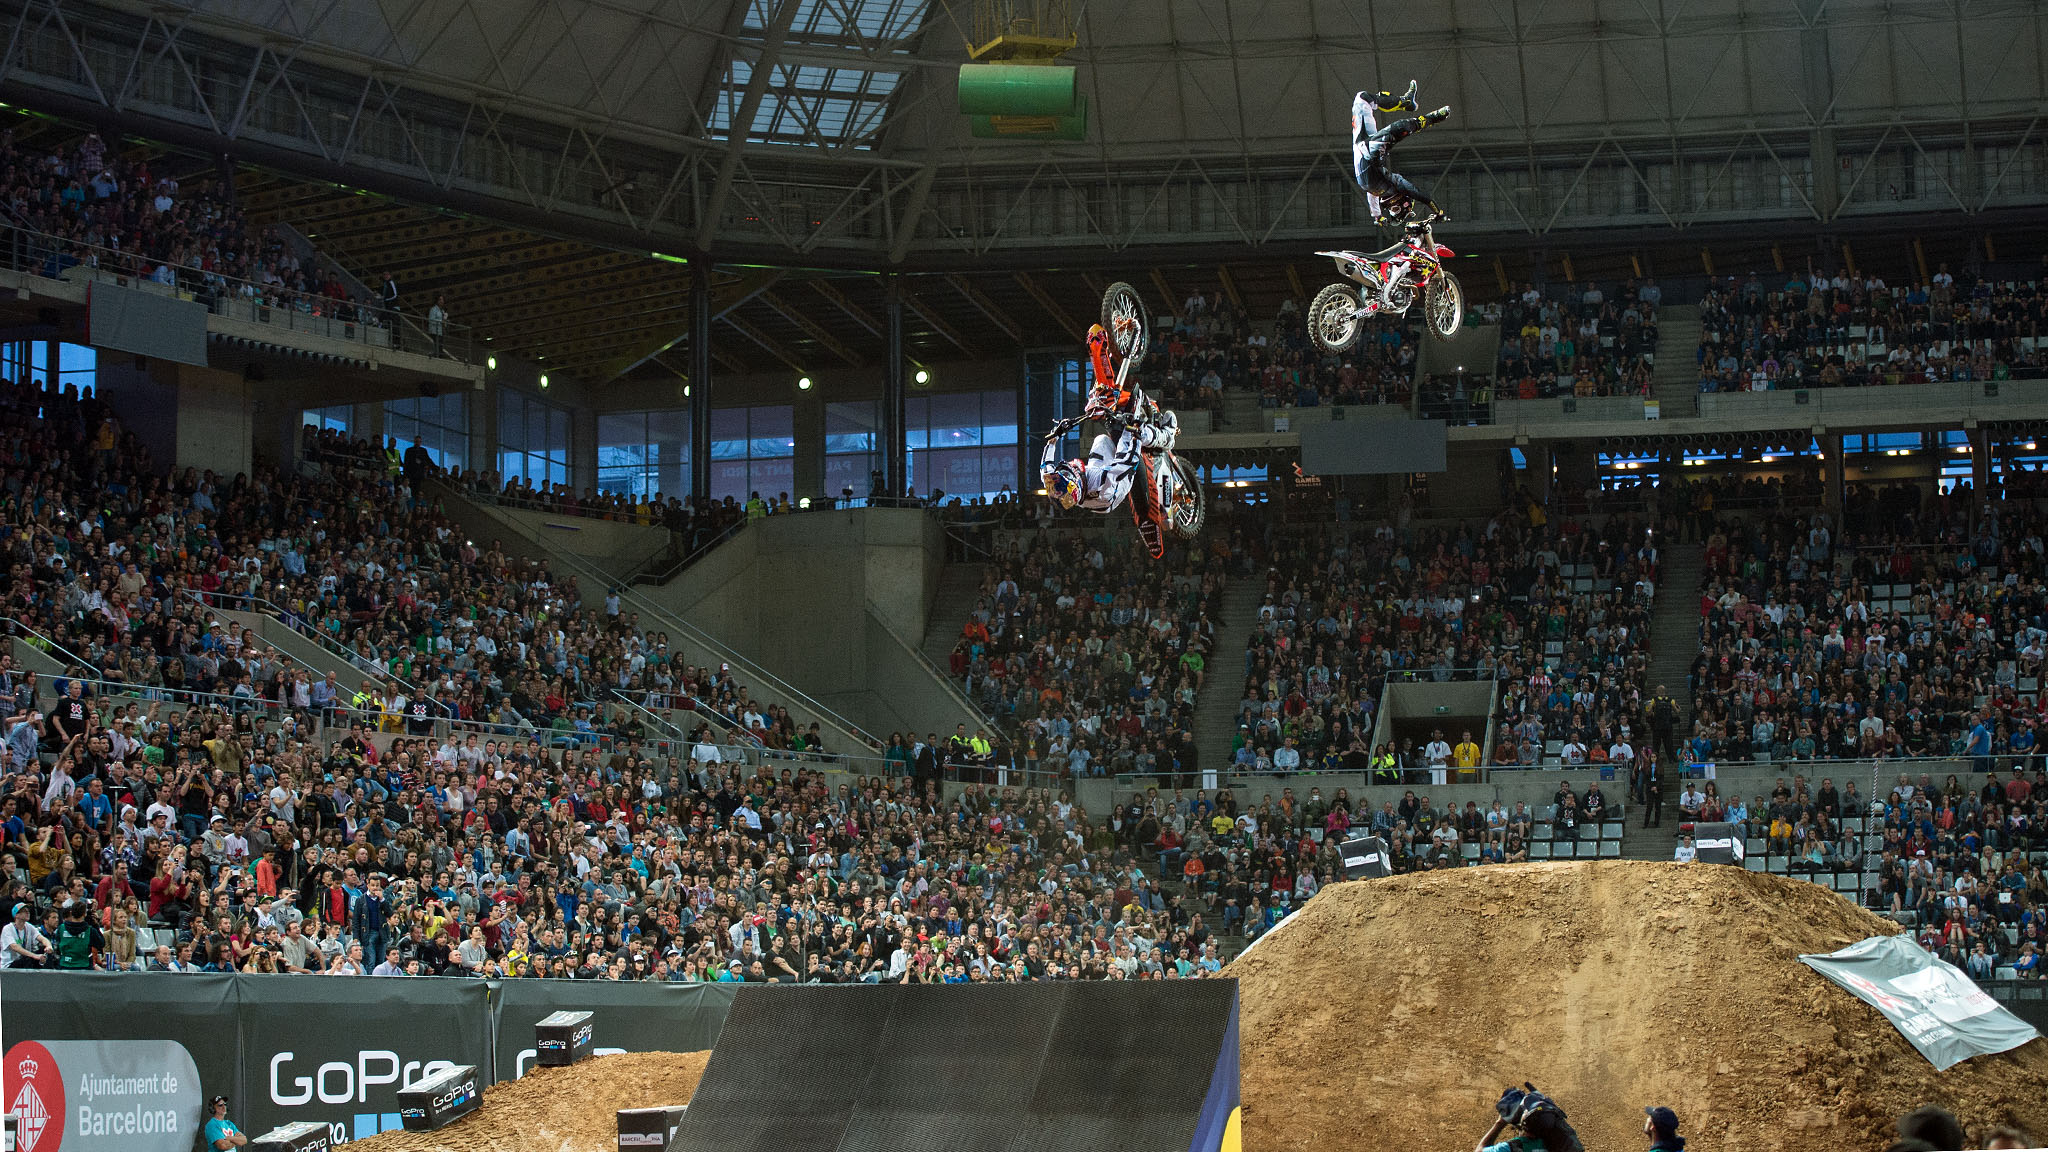 Mat Rebeaud and Mike Mason go head to head for gold in Moto X Speed & Style.